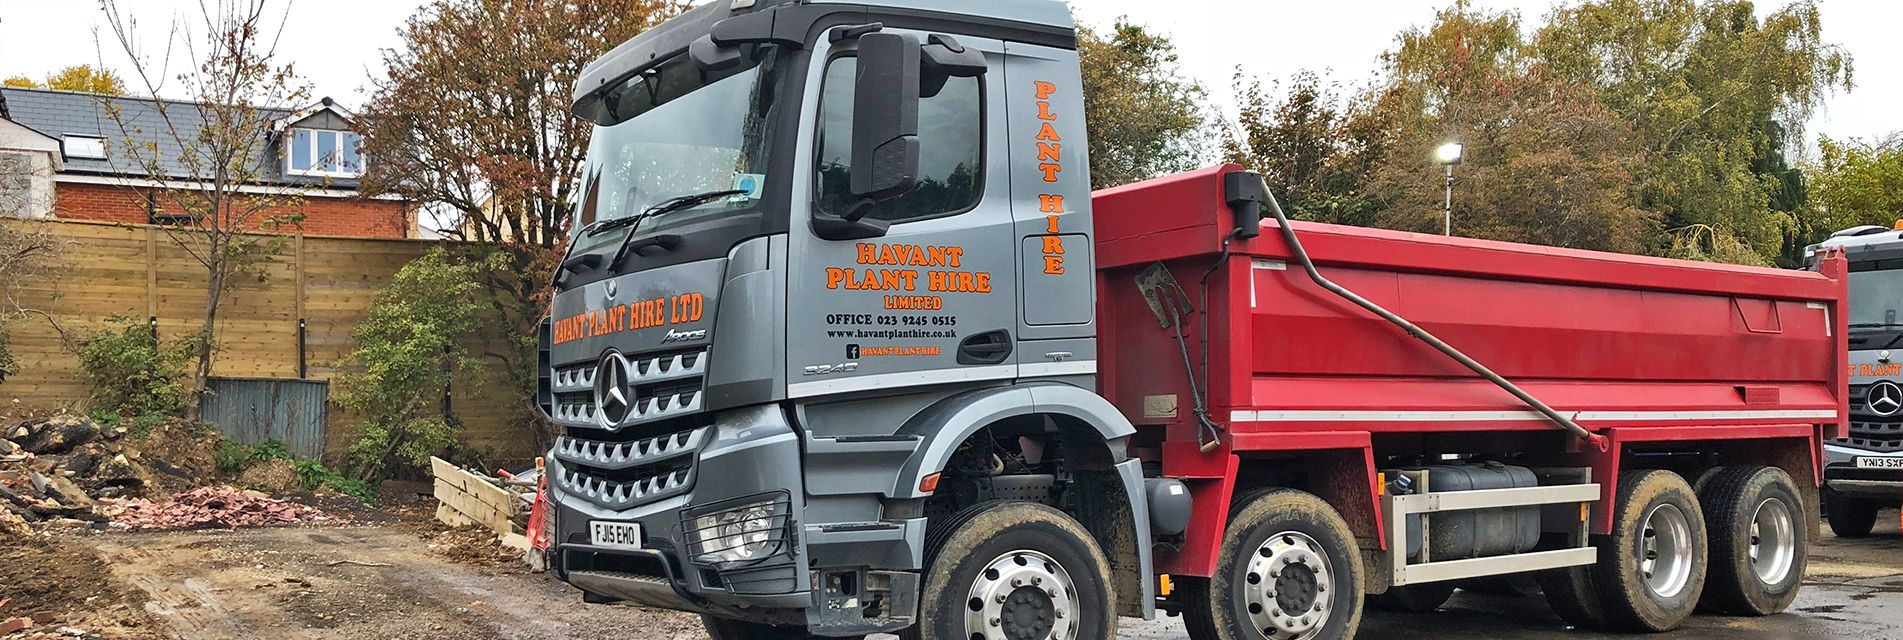 Haulage Transport Hire Titchfield